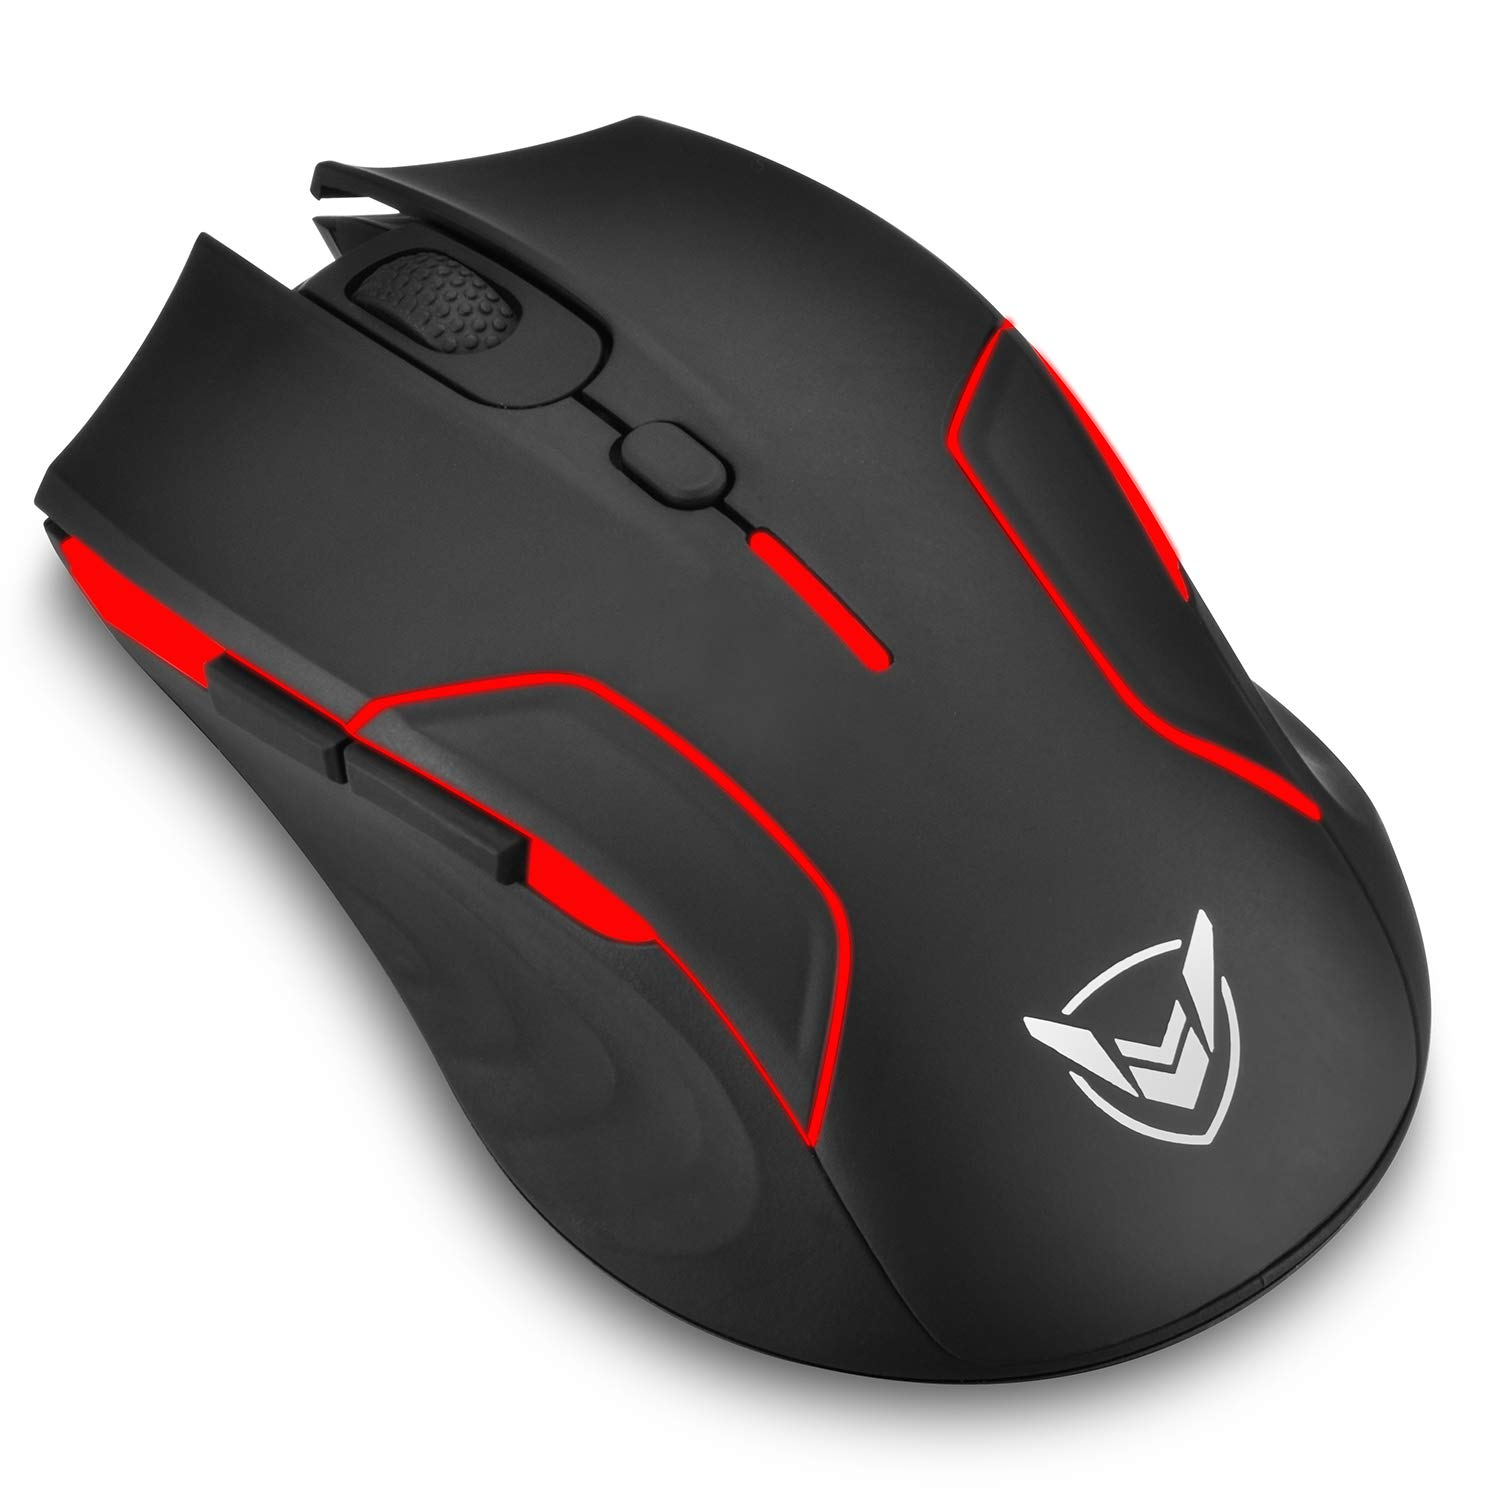 PICTEK Gaming Mouse Wireless, Customizable RGB Backlight Mouse with 6 Programmable Buttons, 220 Hours Battery Life, 1Ms Polling Rate, Adjustable Up to 10000 DPI